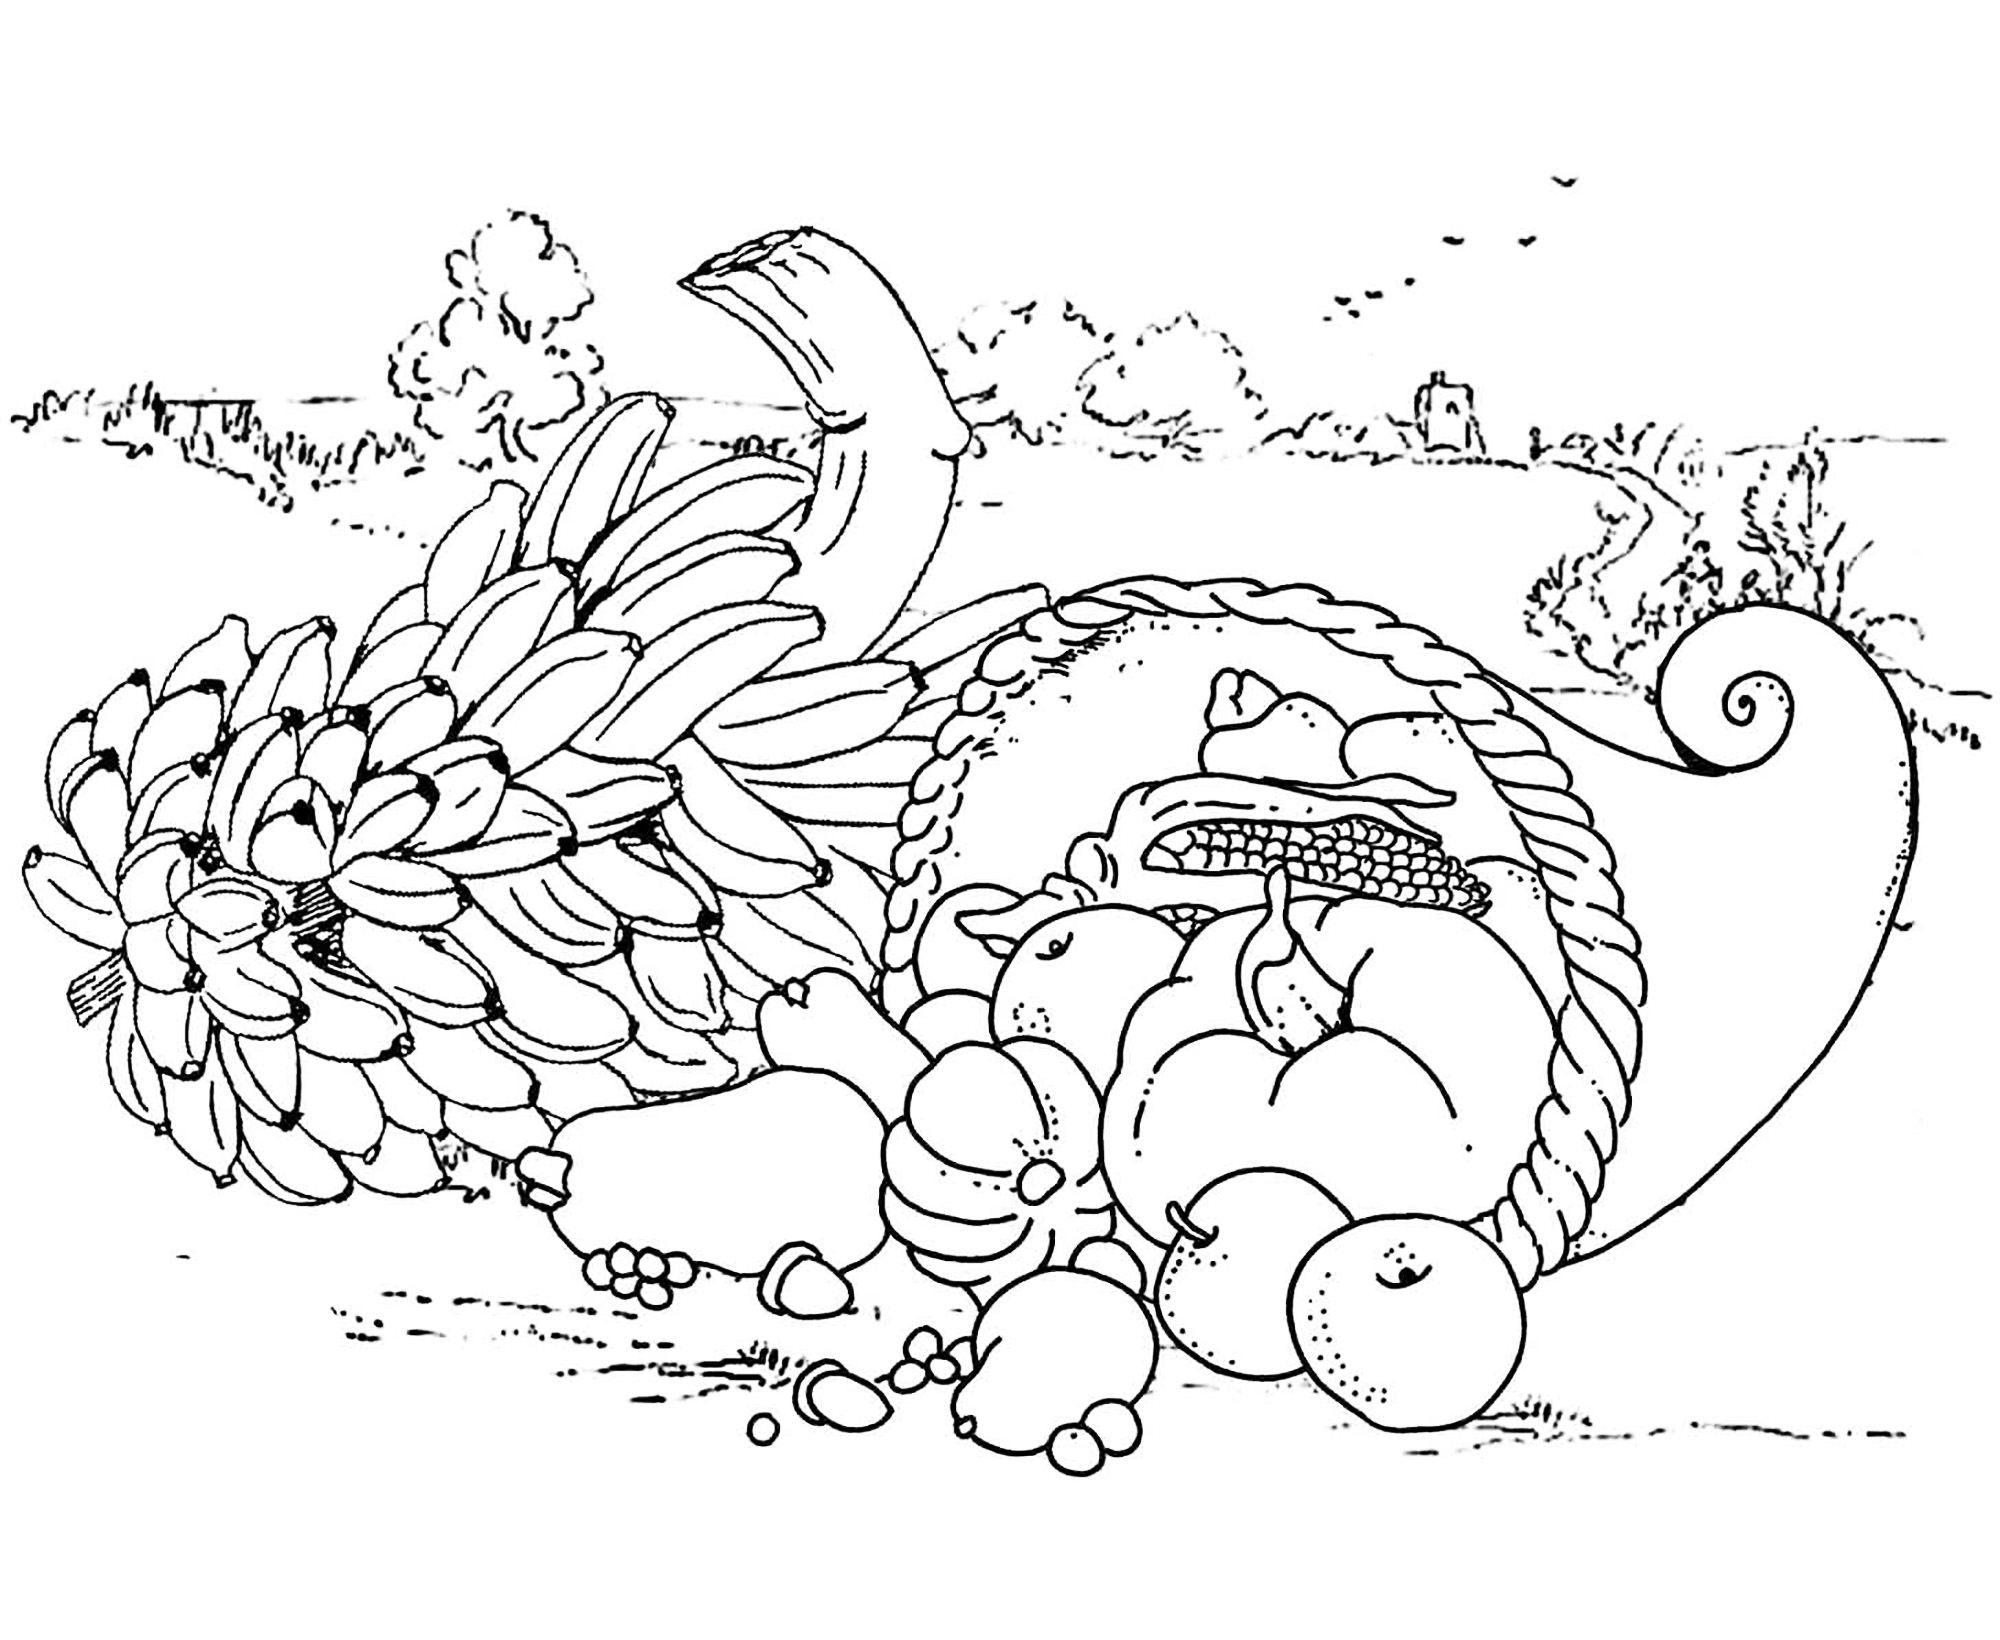 The Best Free Dementia Coloring Page Images Download From